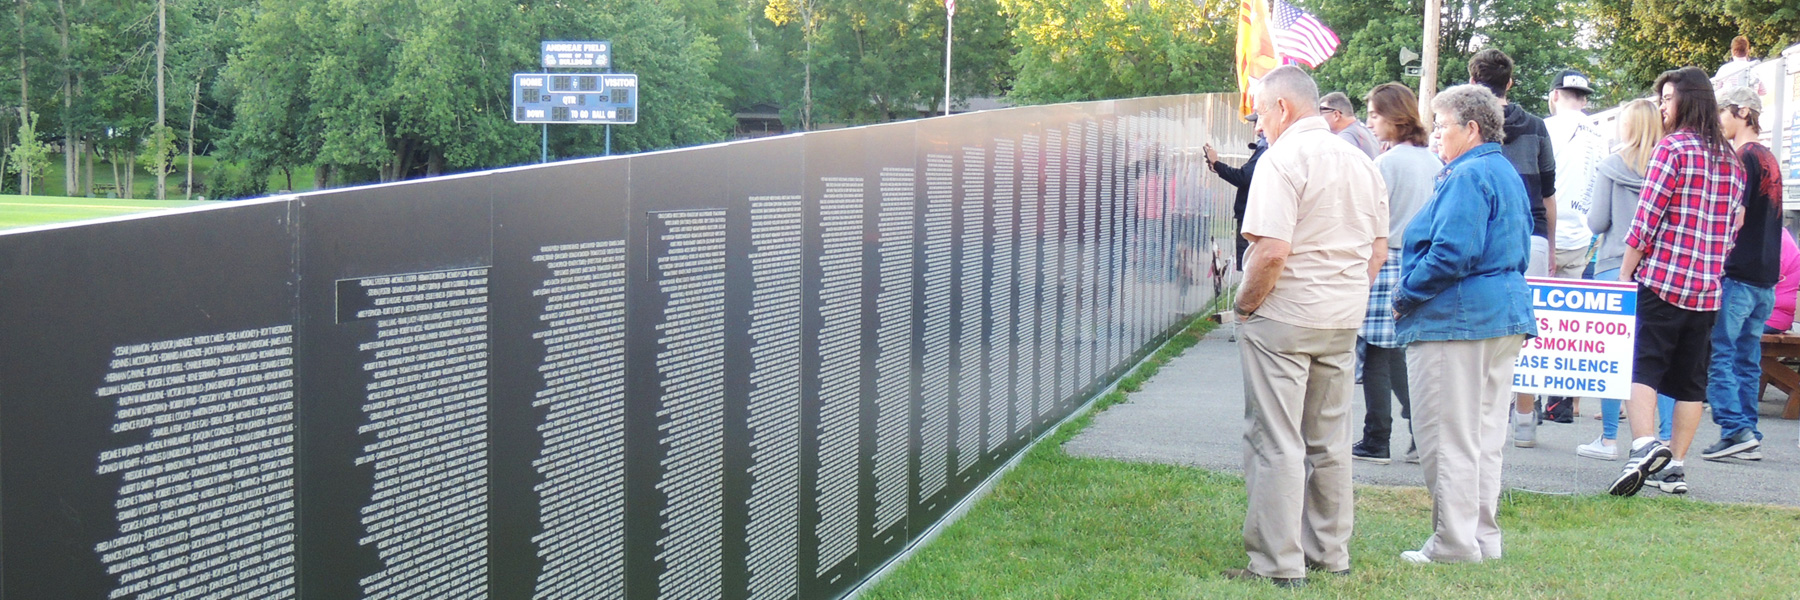 The Traveling Vietnam Memorial